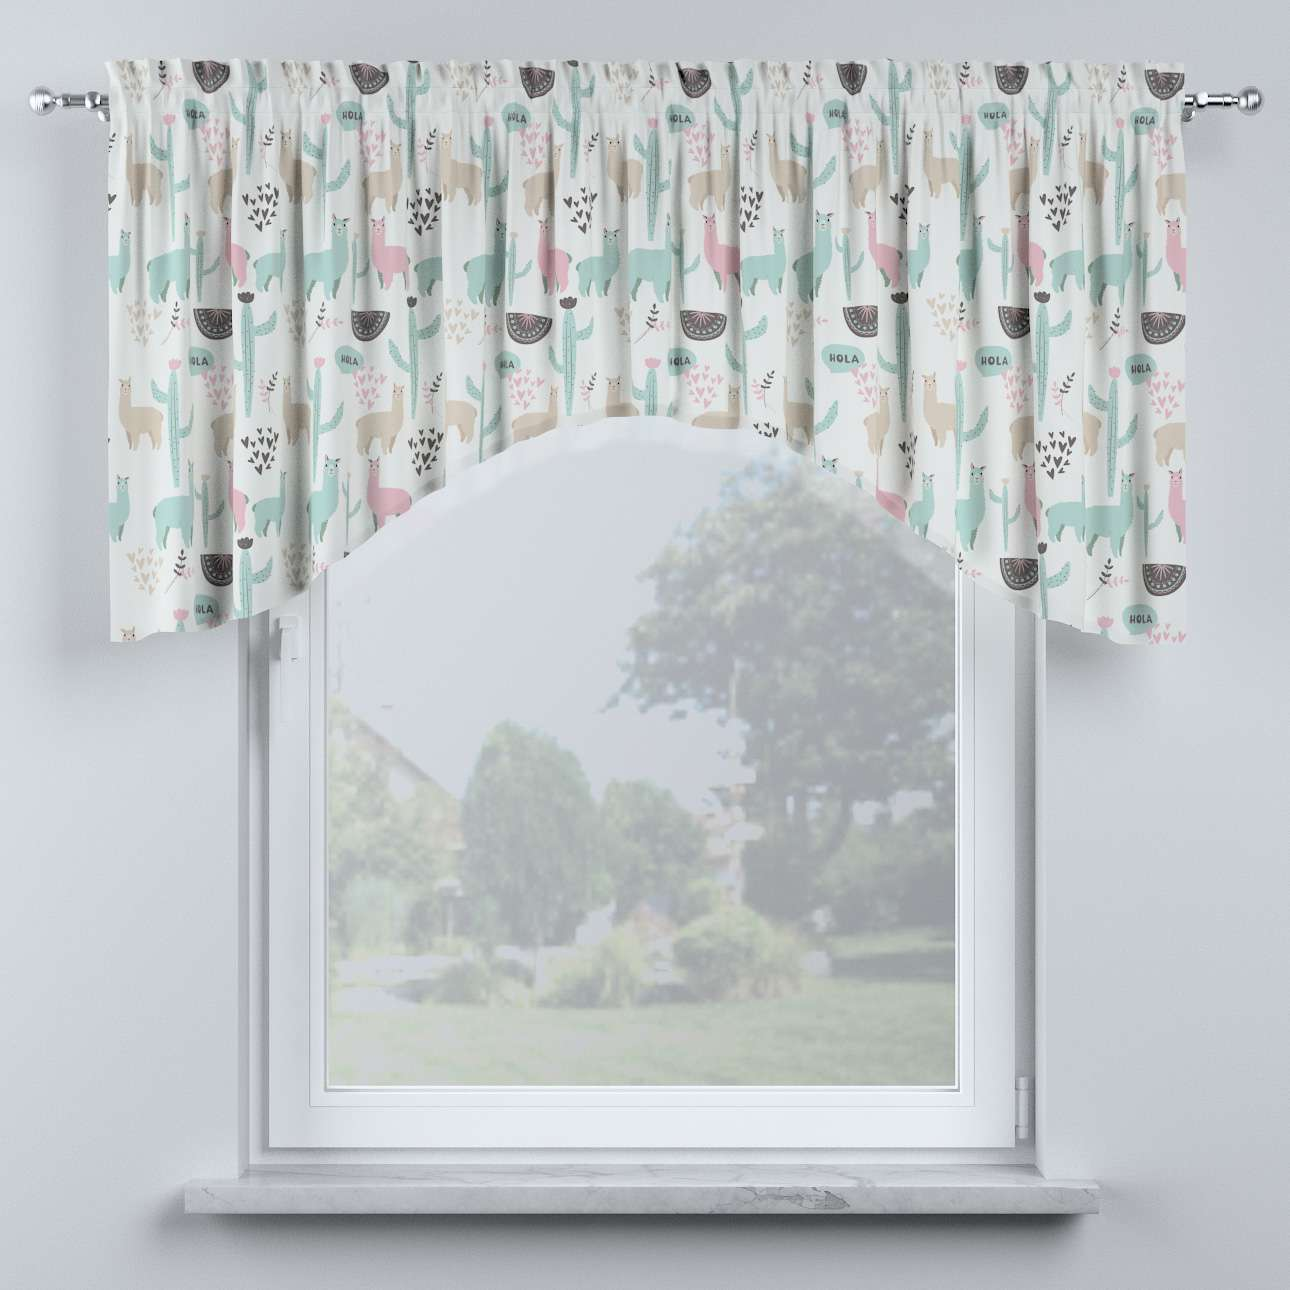 Bow lambrequin in collection Magic Collection, fabric: 500-01